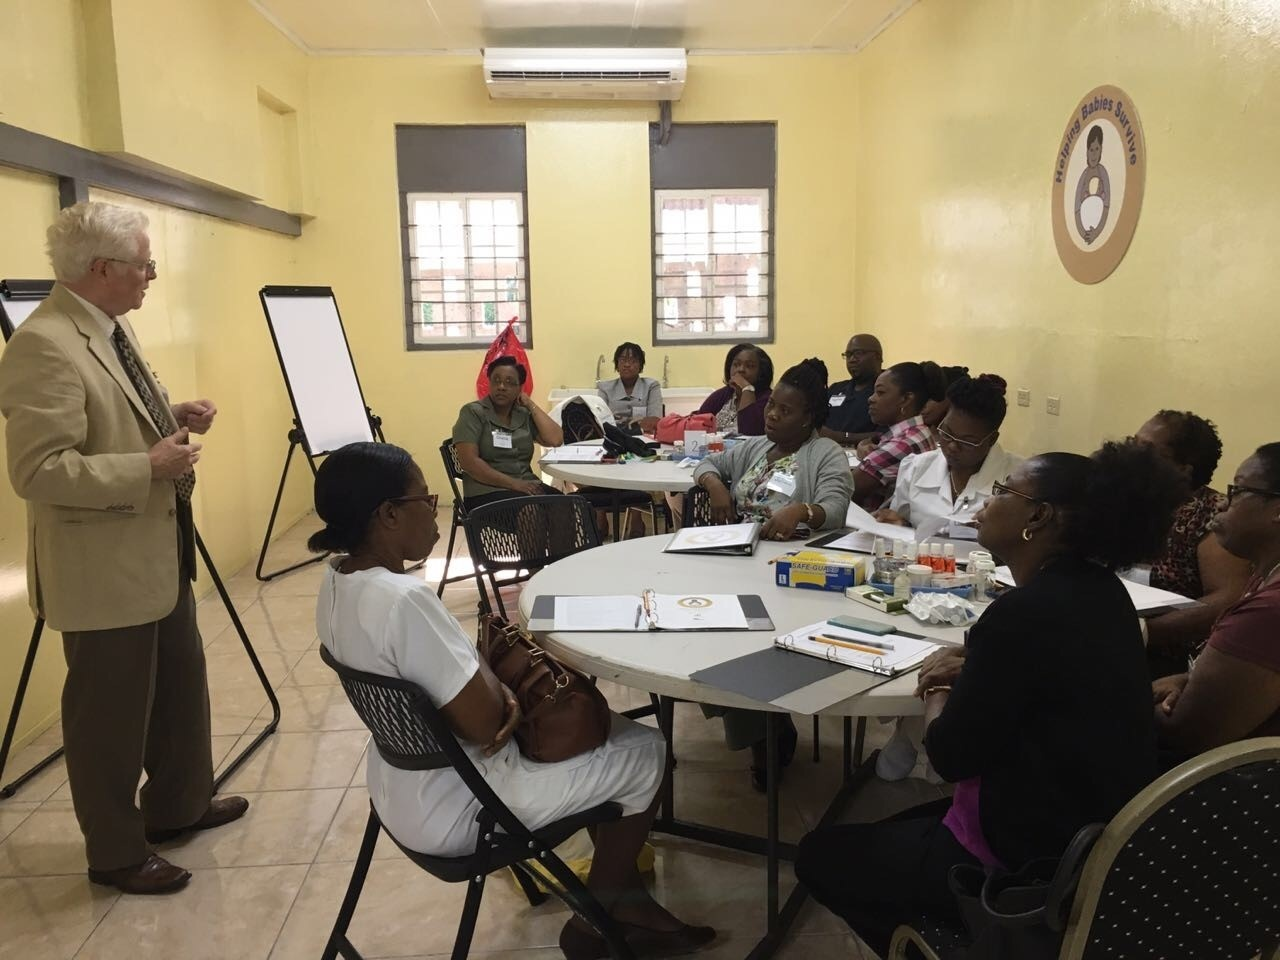 (HBS master trainees with Dr. Doug McMillan; photo taken by Dr. Rudolph Stevens) Caption: HBS session being led by Dr. Doug McMillan, Kingston, Jamaica, May 2017